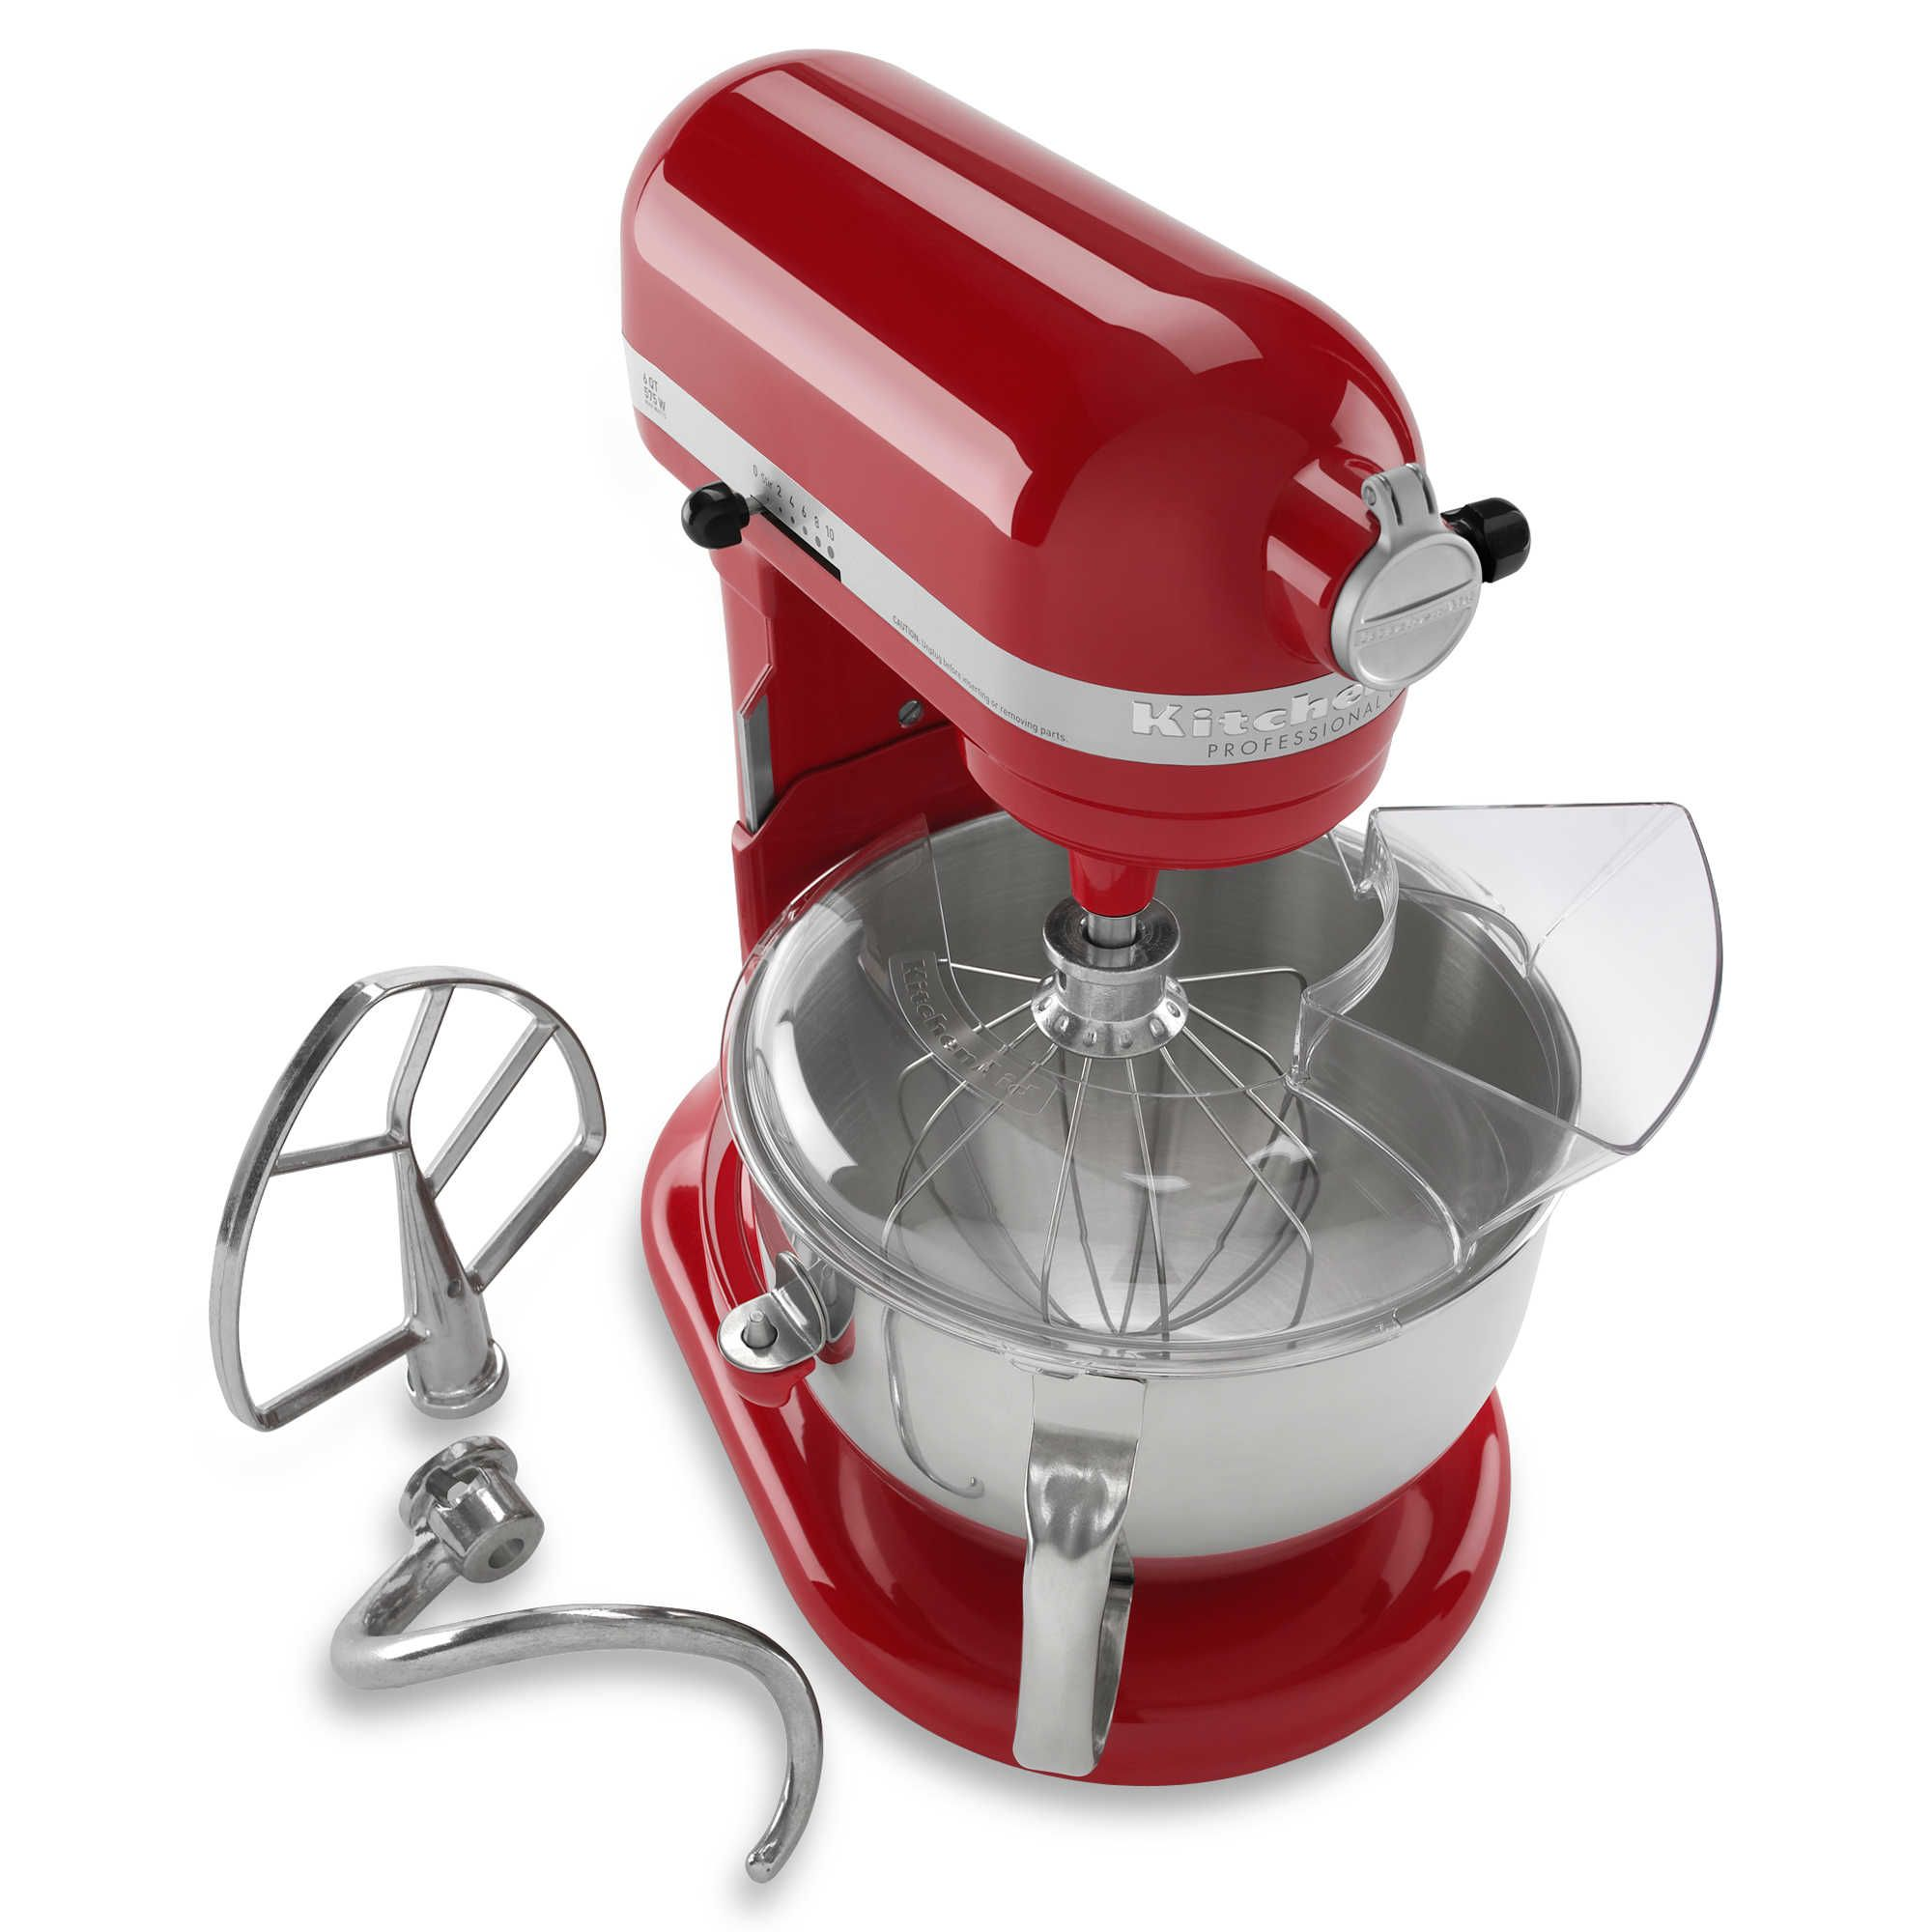 Kitchenaid professional 600 in empire red bed bath and